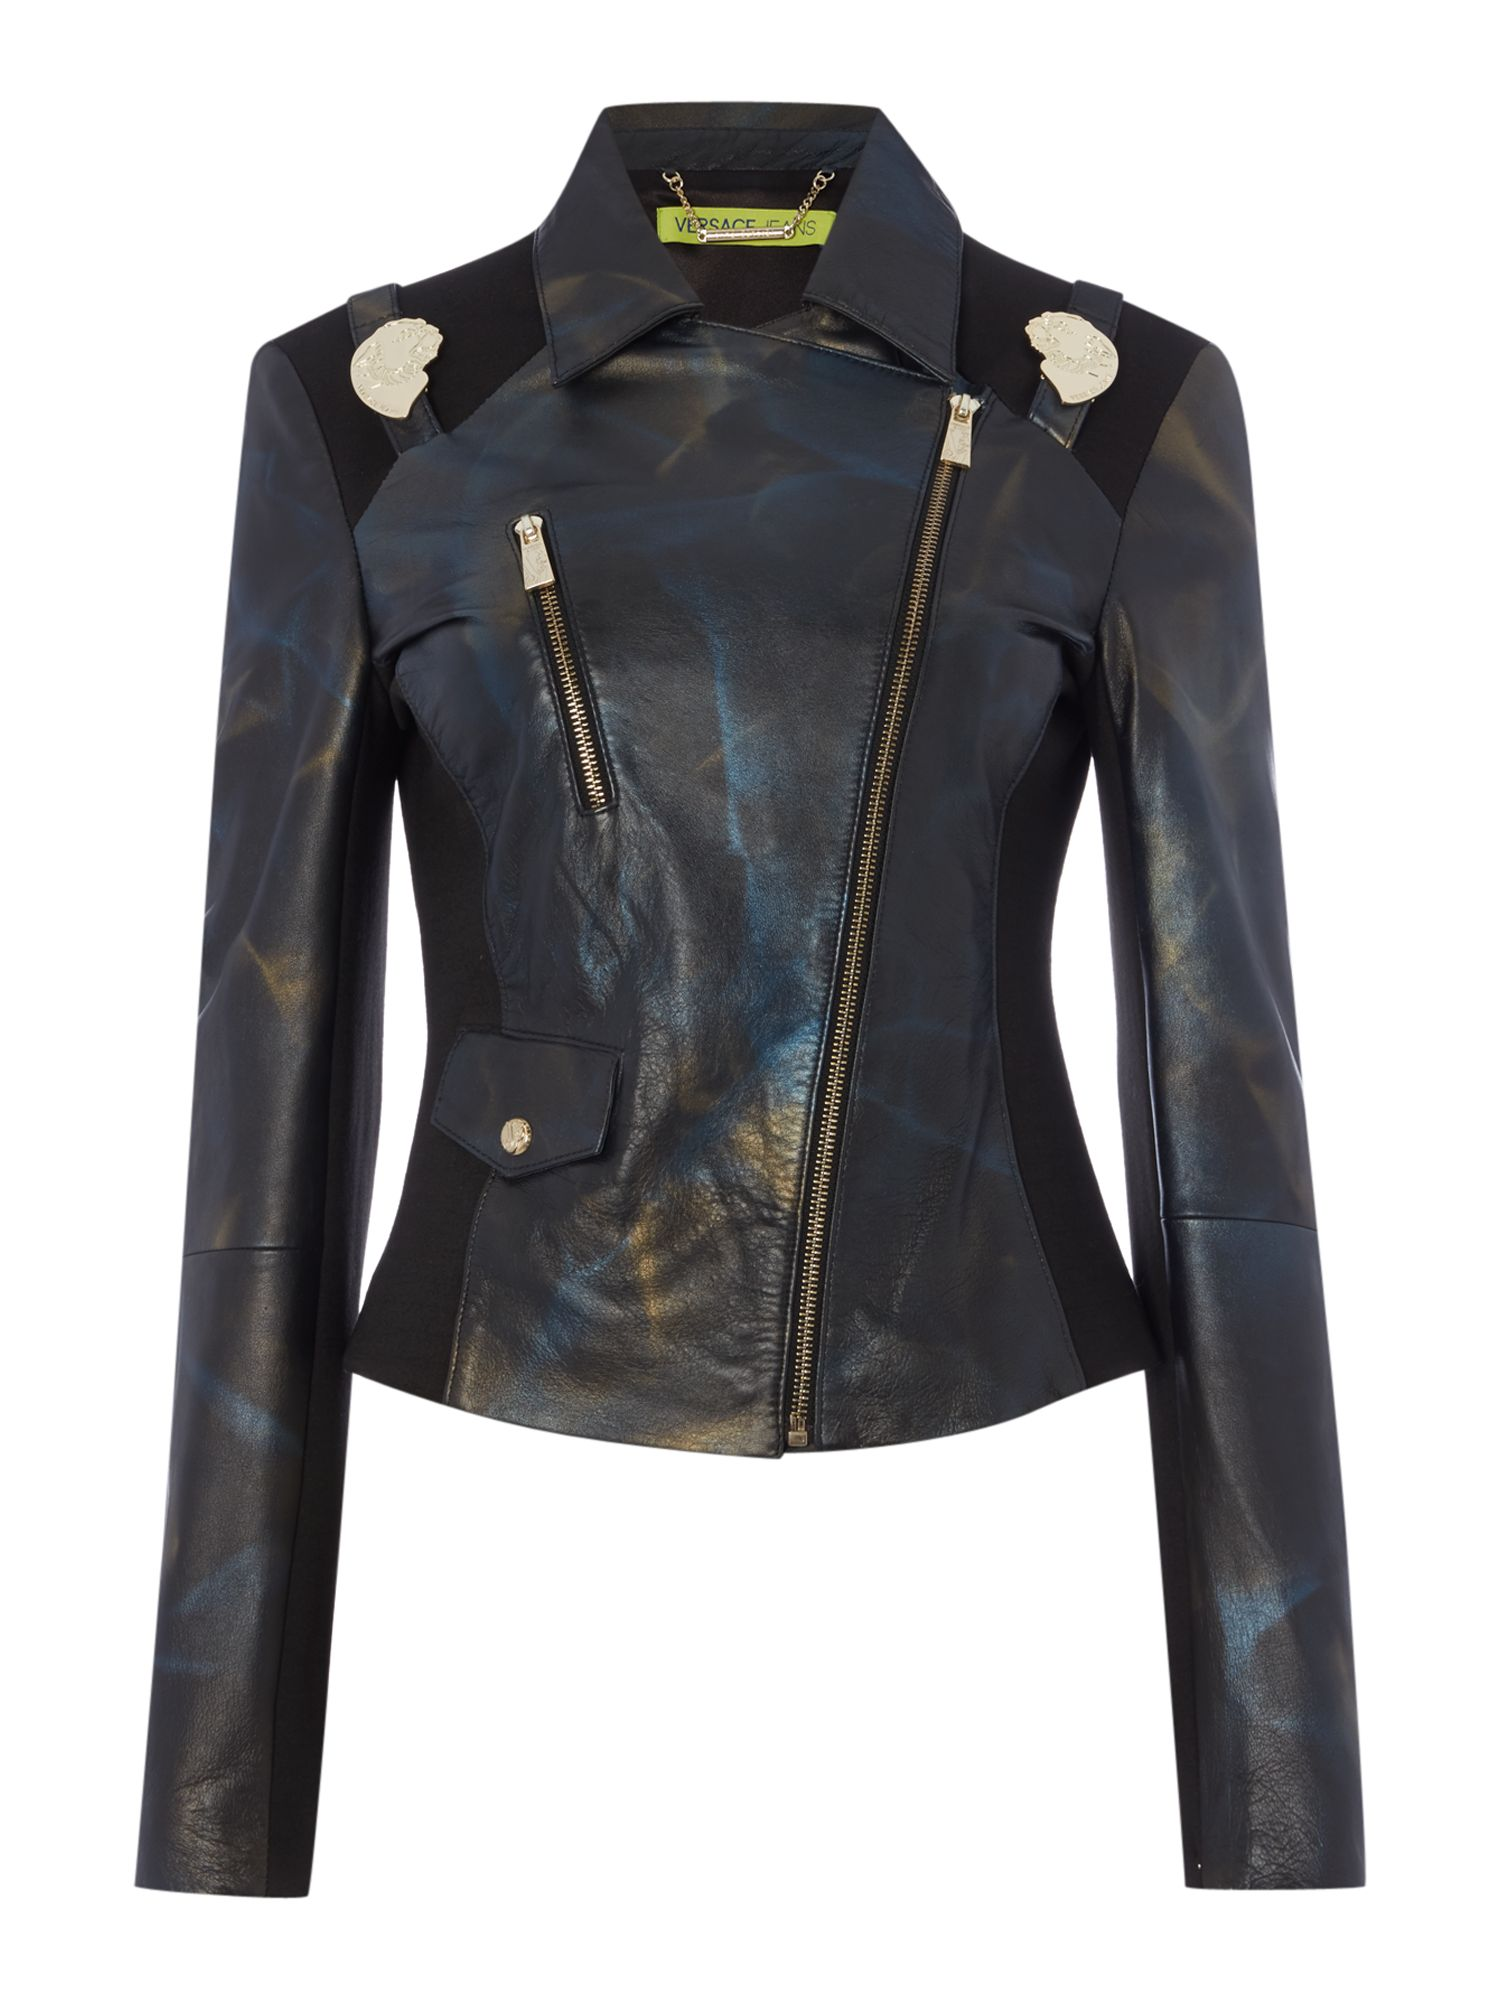 Versace Jeans Leather jacket with shoulder detail, Black